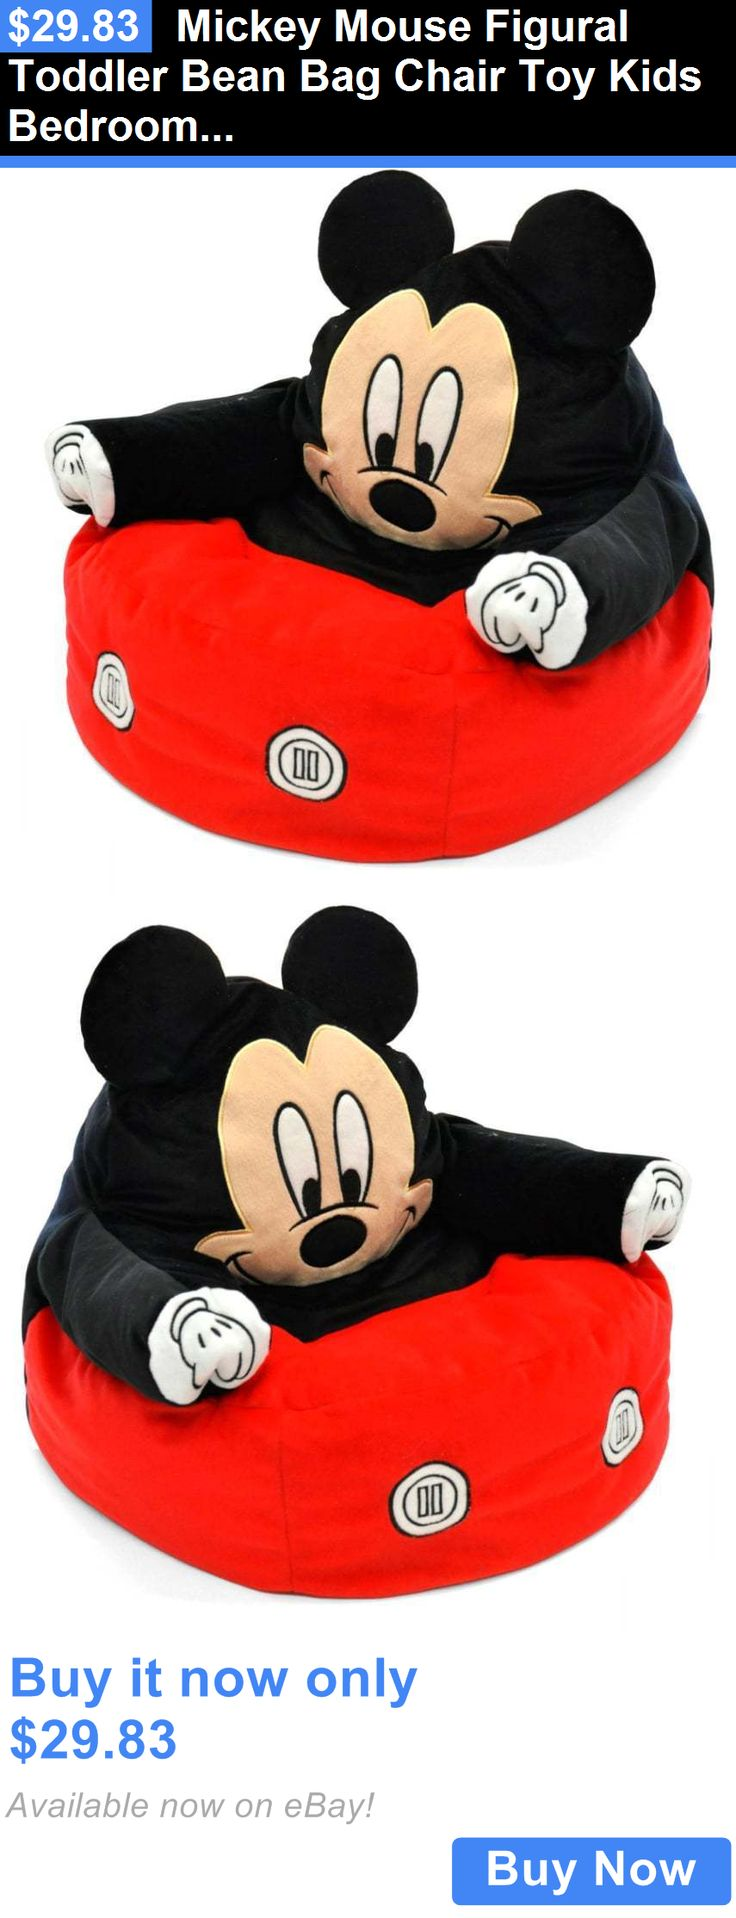 Kids Furniture Mickey Mouse Figural Toddler Bean Bag Chair Toy Bedroom Couch BUY